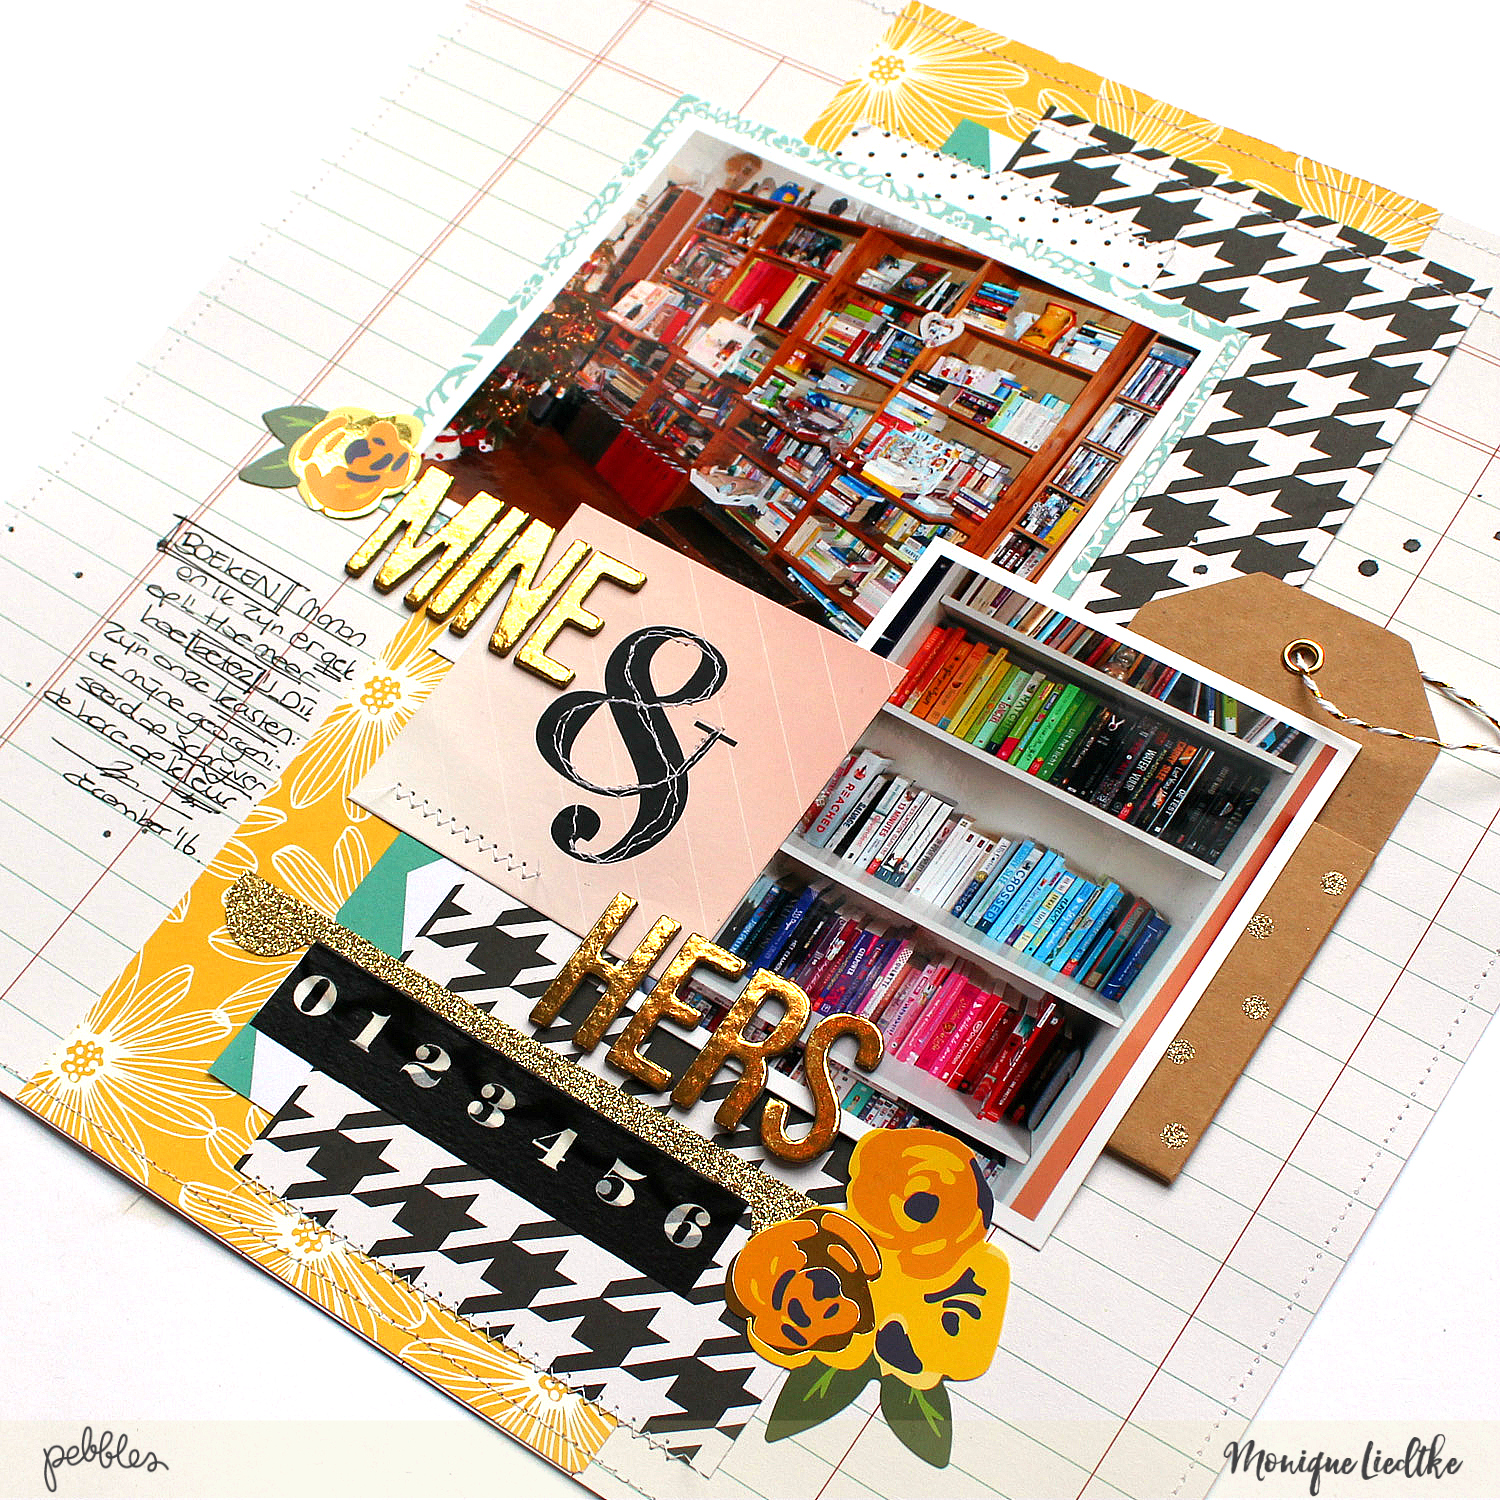 A layout about how to organize your books made by @MoniqueLiedtke using the #Homemade collection from @PebblesInc.